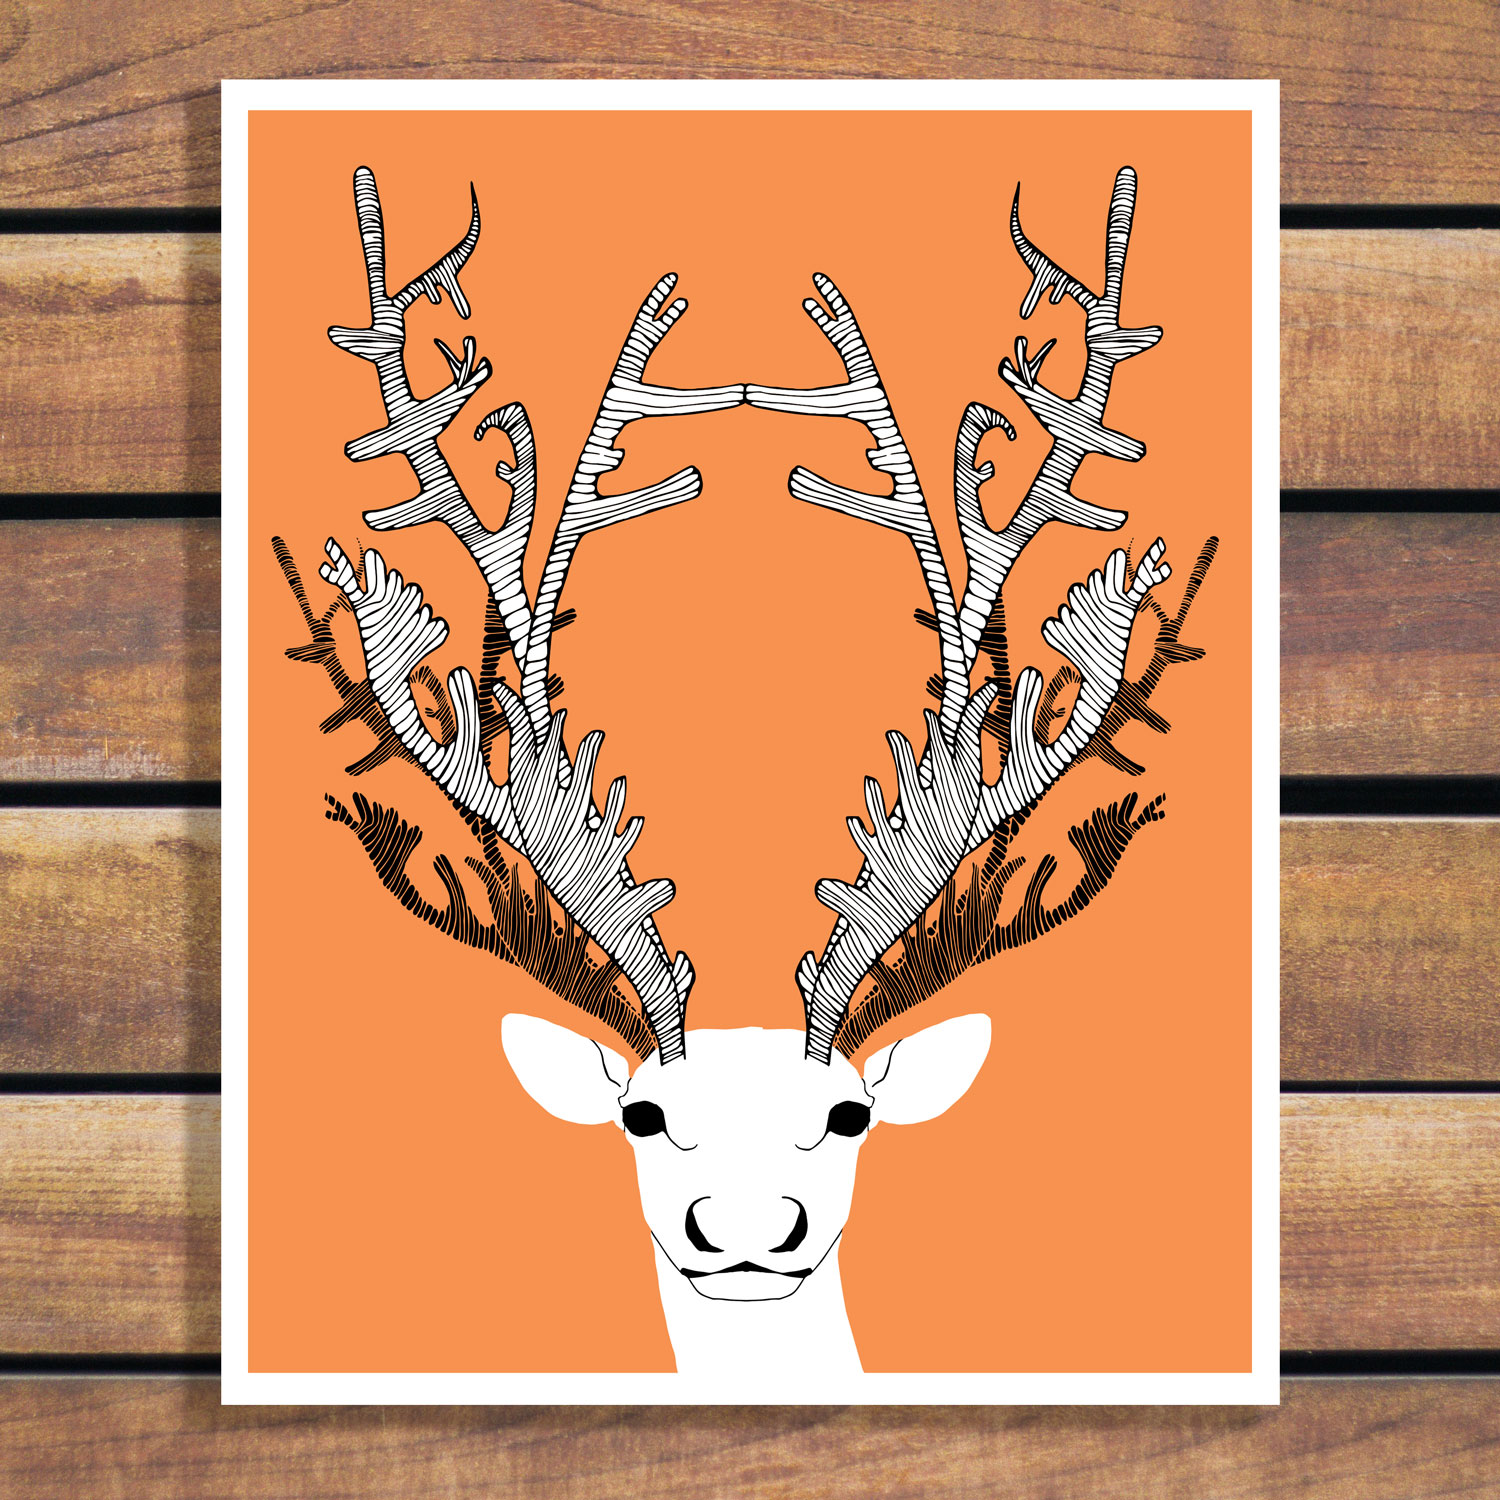 Caribou Illustration by Brina Schenk - Custom Colour art poster and prints - digital files or signed prints.